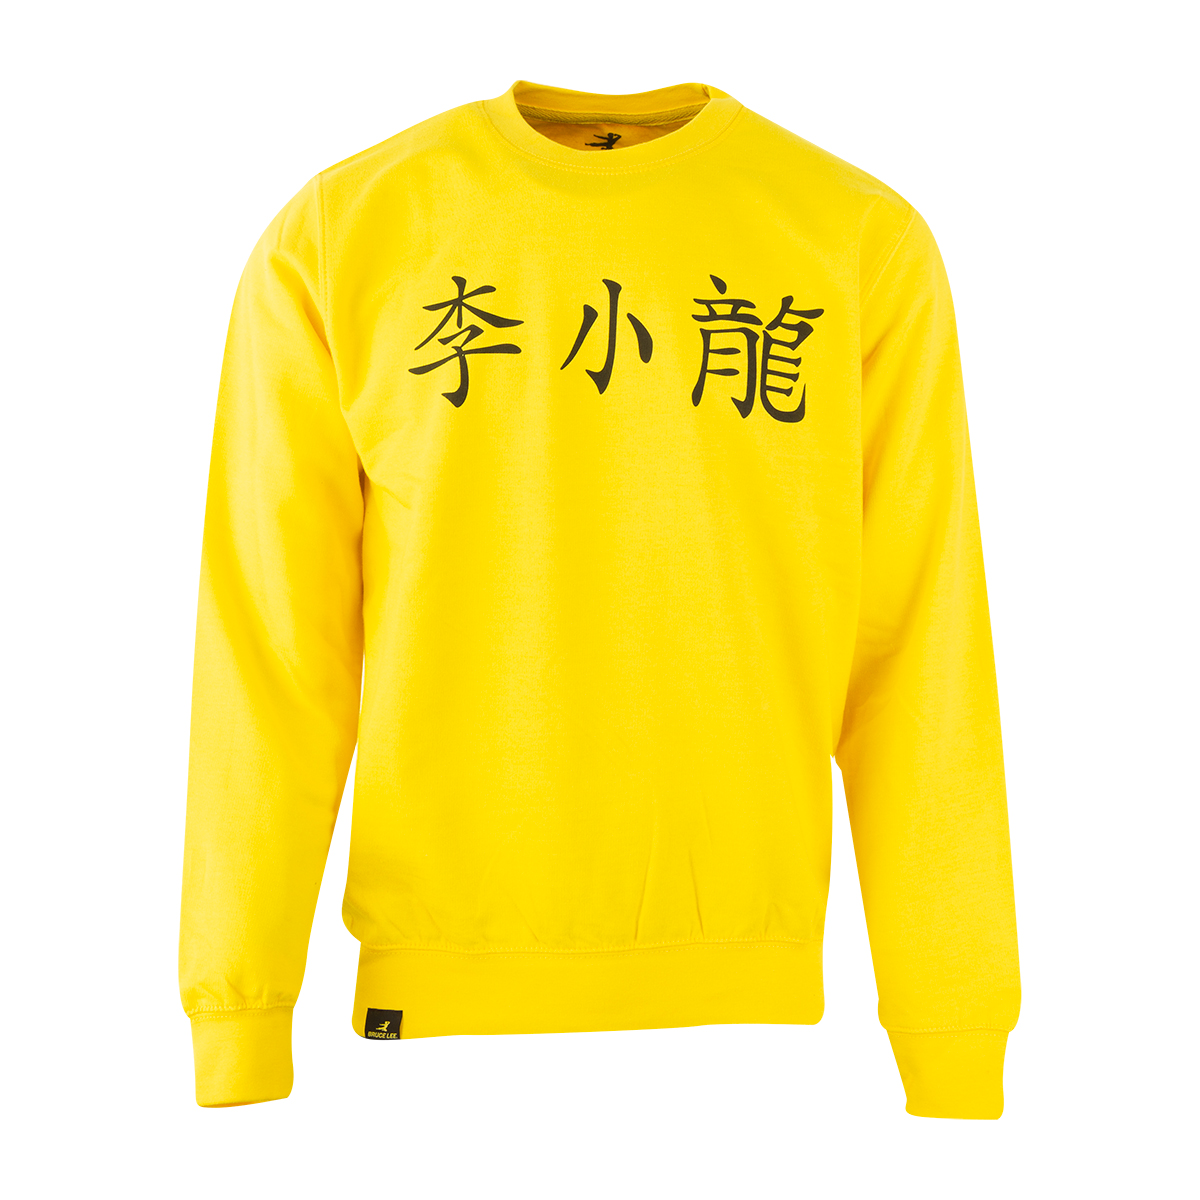 Lee Little Dragon Symbols Crewneck Sweatshirt